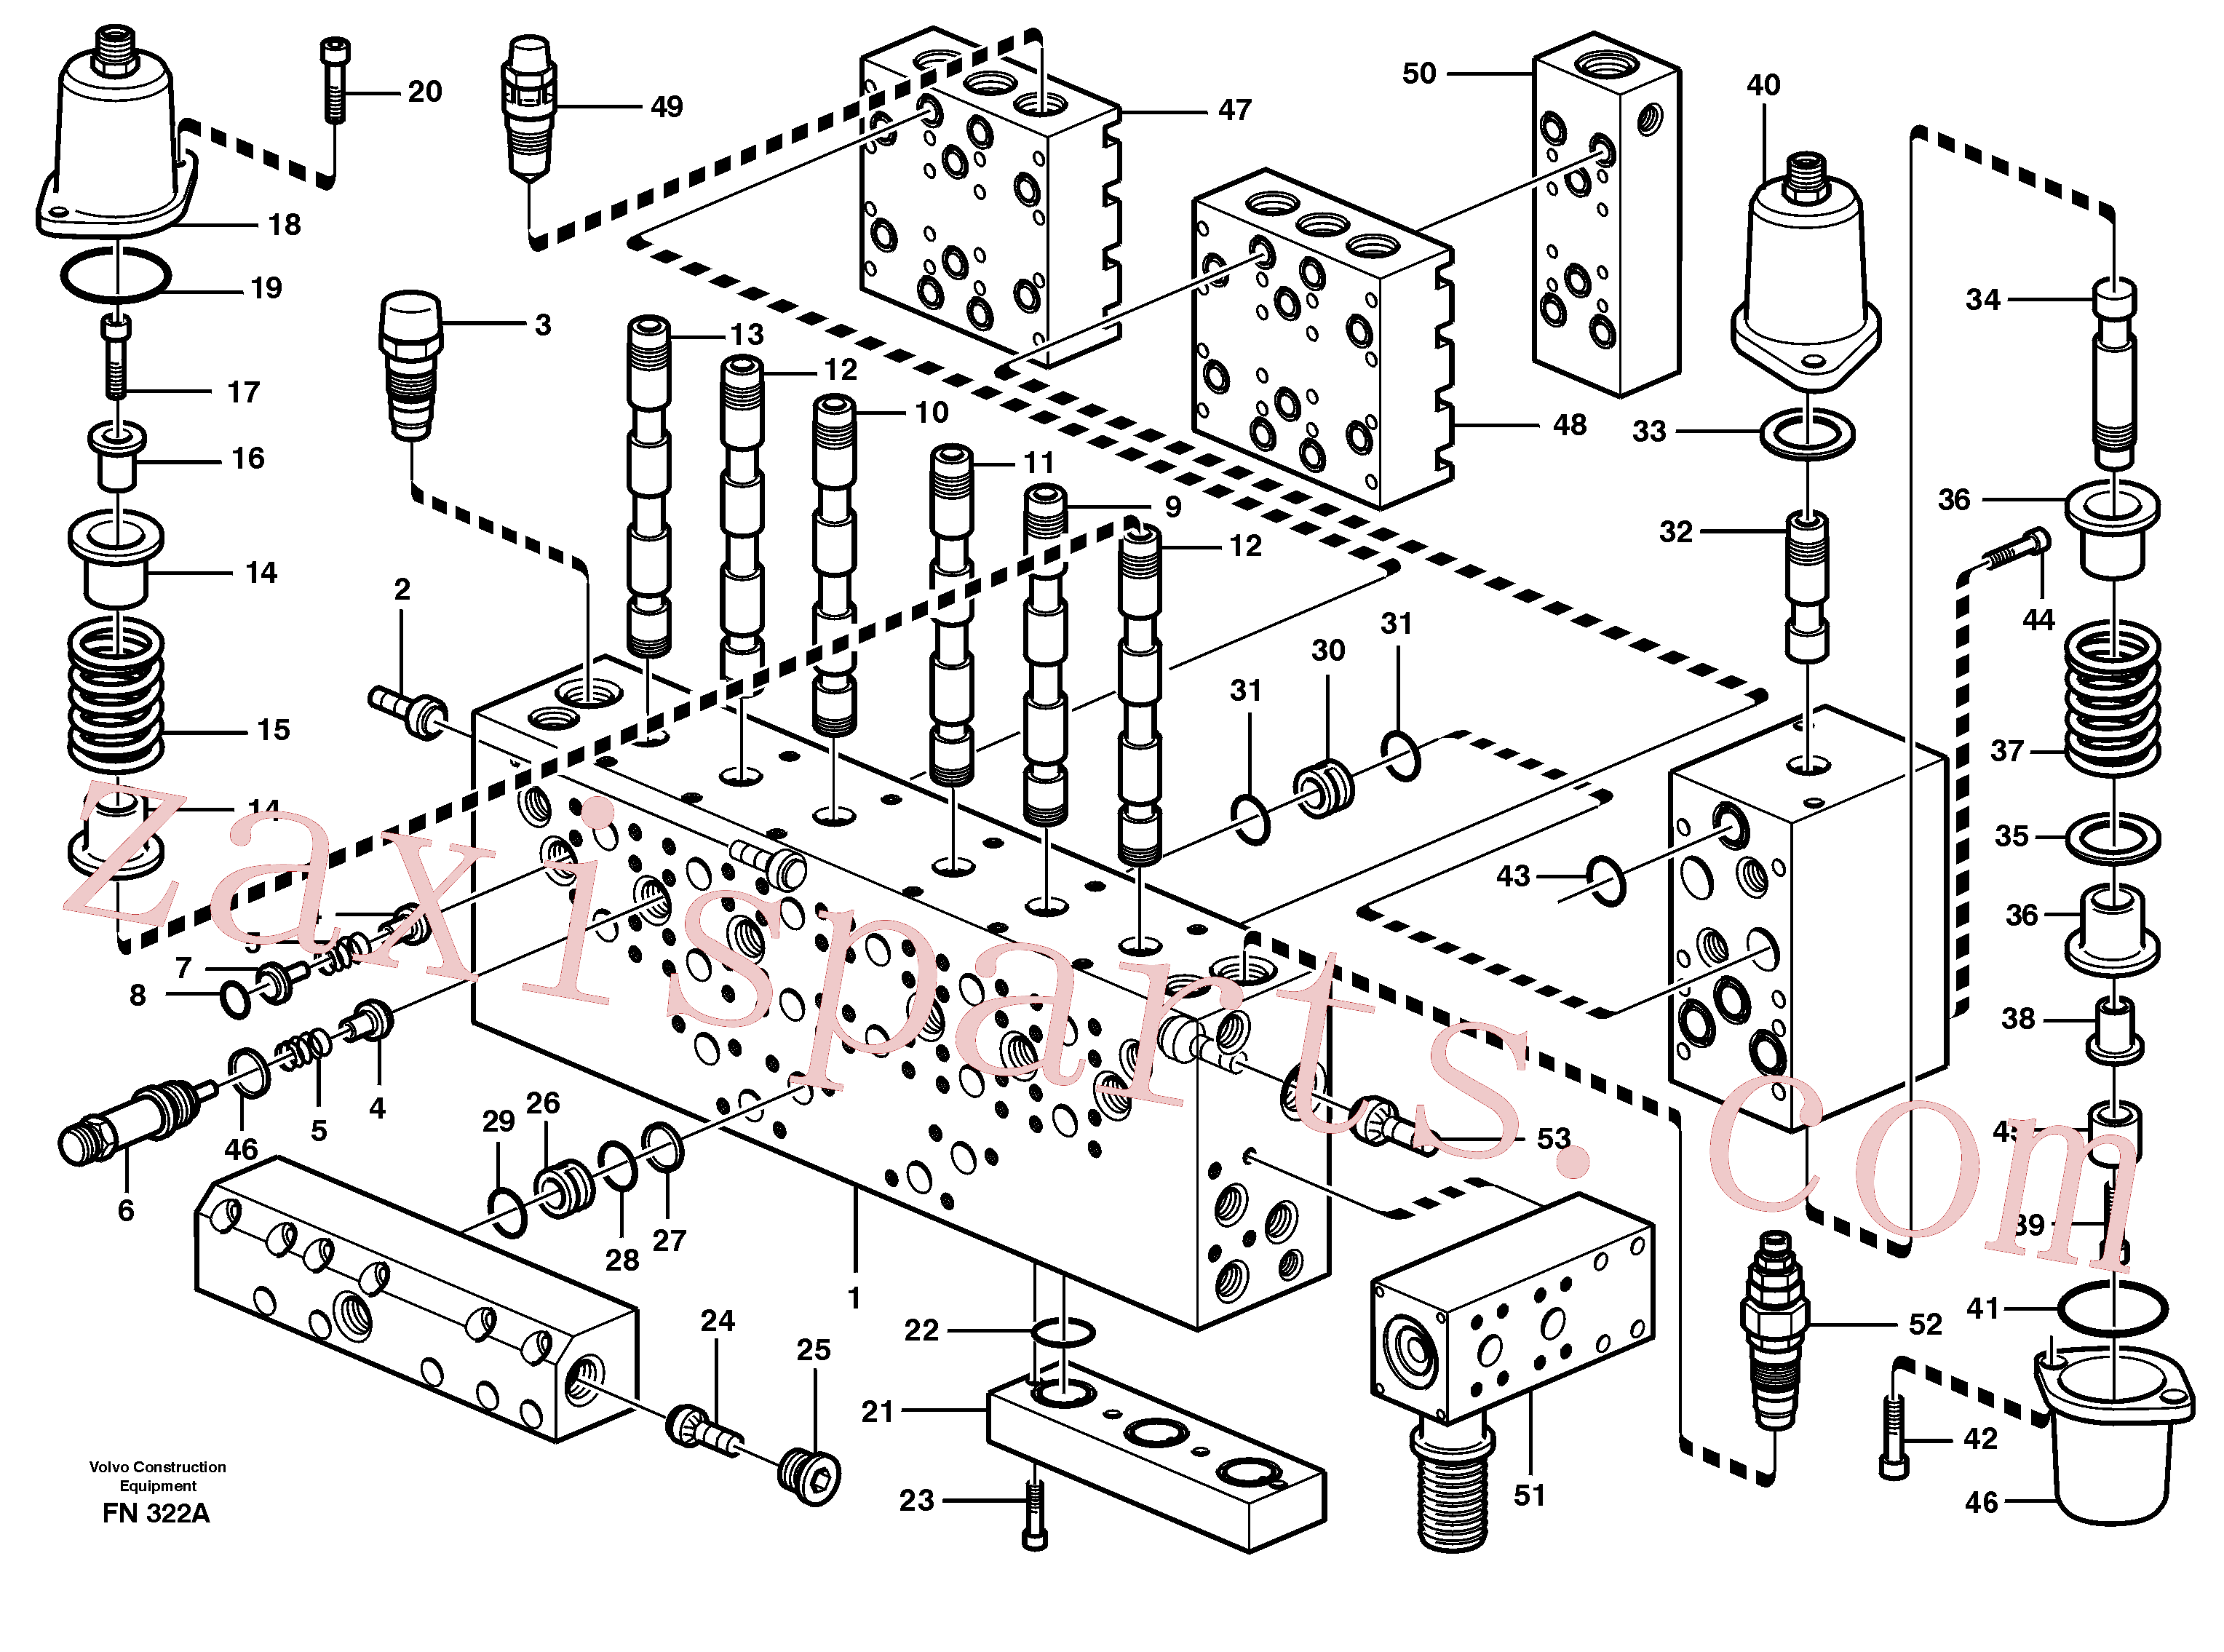 VOE14342322 for Volvo Main valve assembly, valves(FN322A assembly)